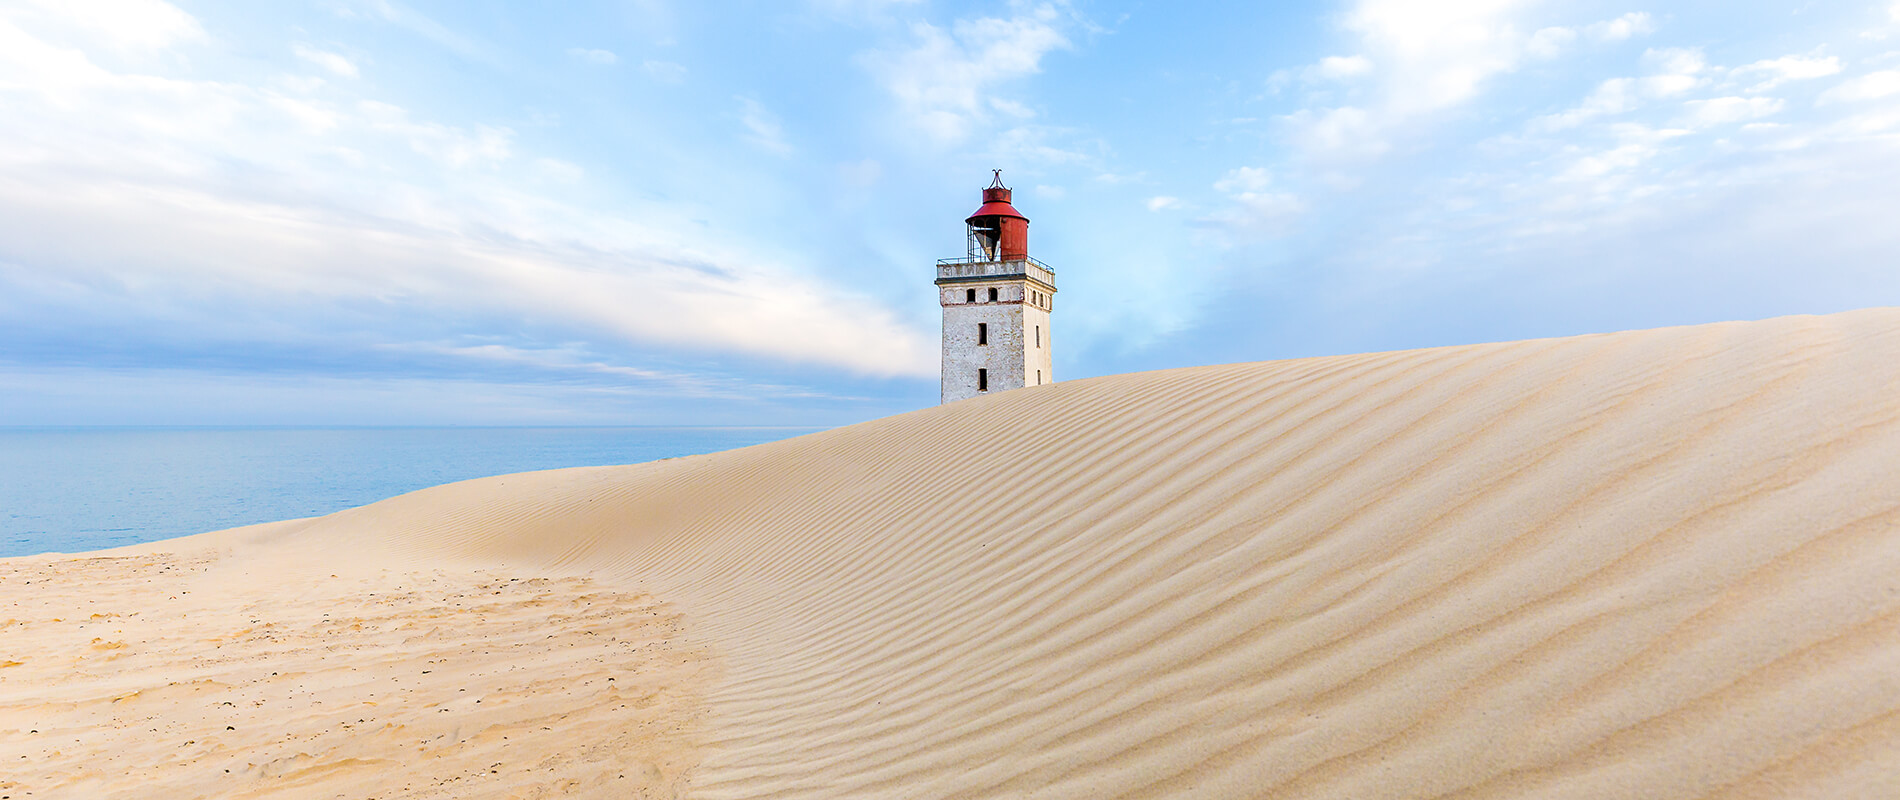 Rubjerg Knude, the lighthouse destined to disappear among the sand dunes